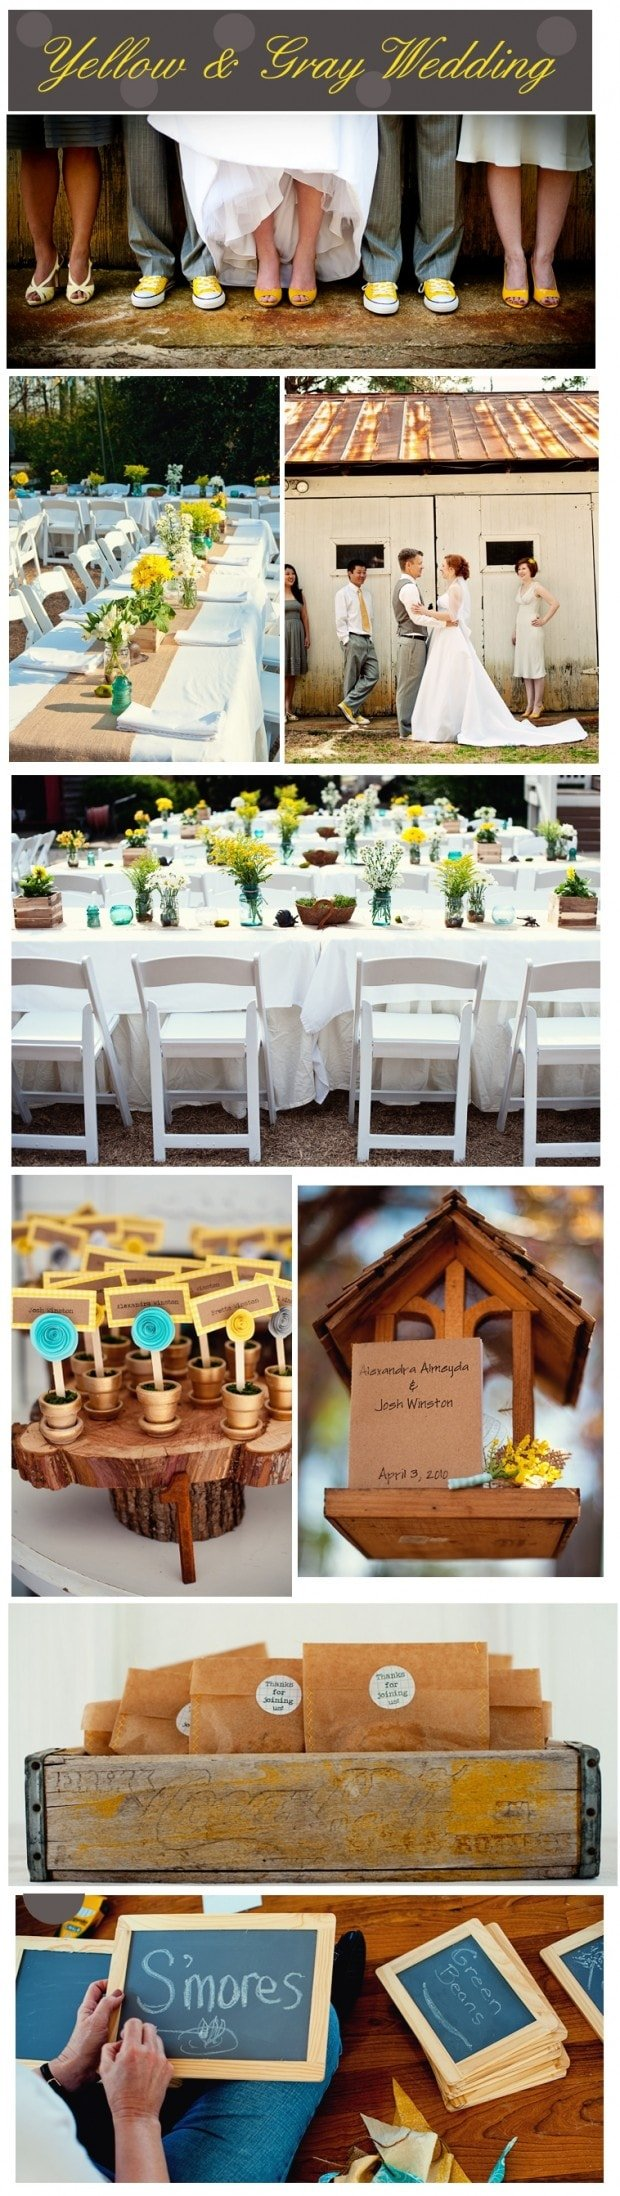 Yellow & Gray Wedding